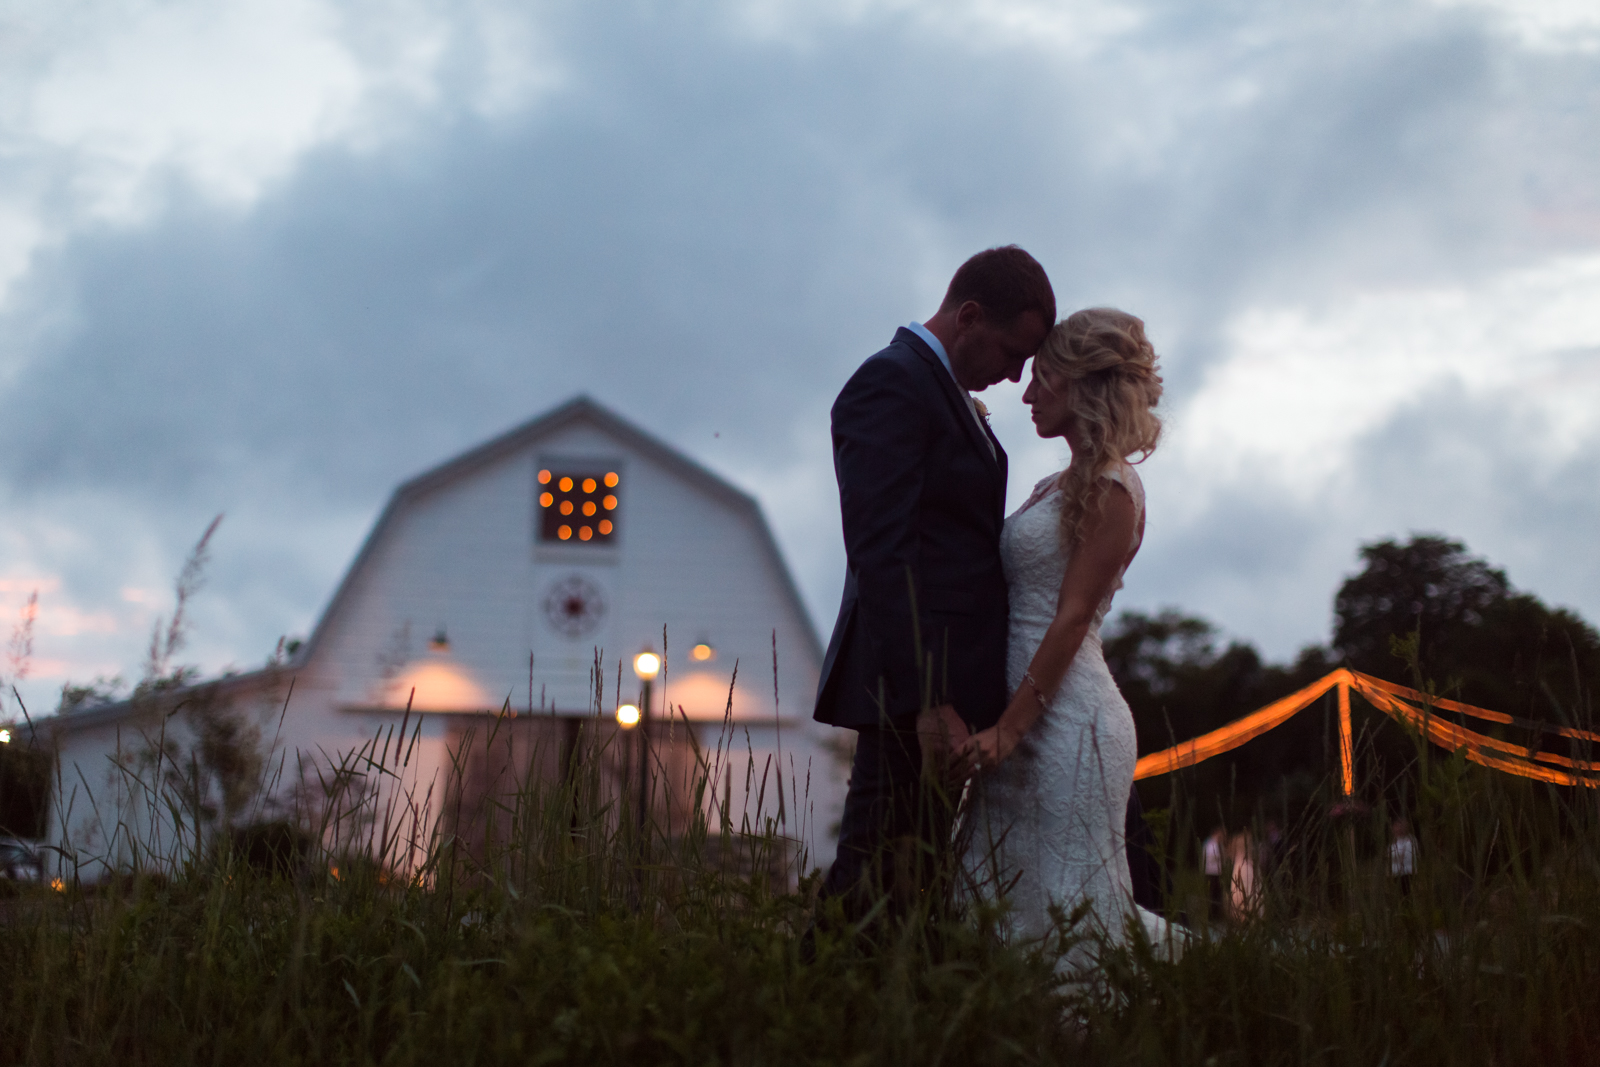 Poetry-&-Motion-High-Country-Wedding-Photography-Overlook-Barn (30 of 35).jpg